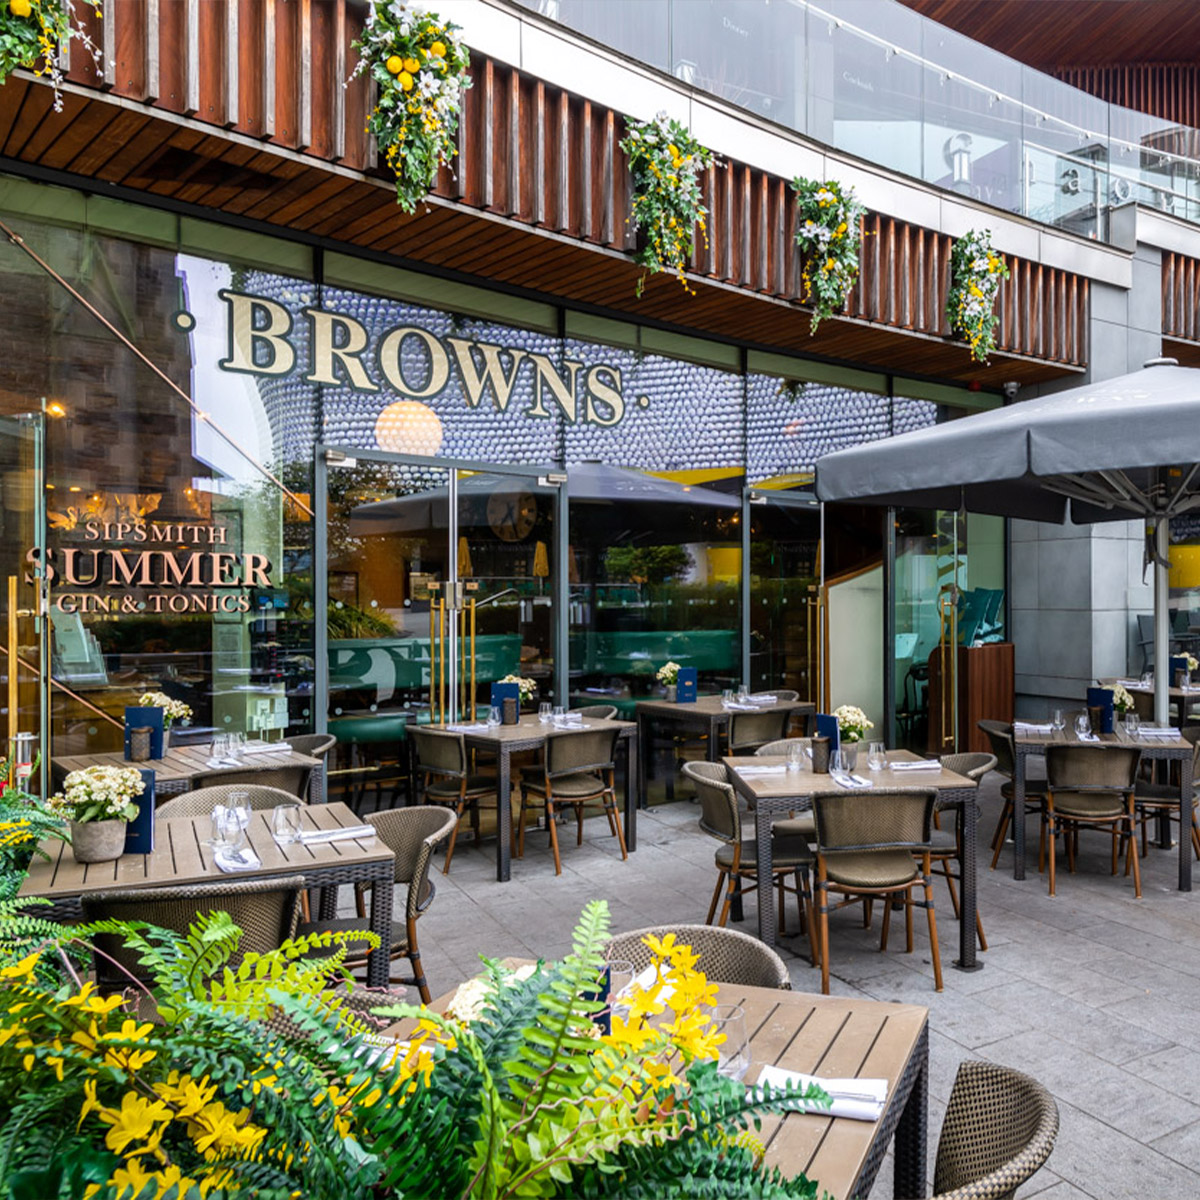 Browns Brasserie & Bar Birmingham